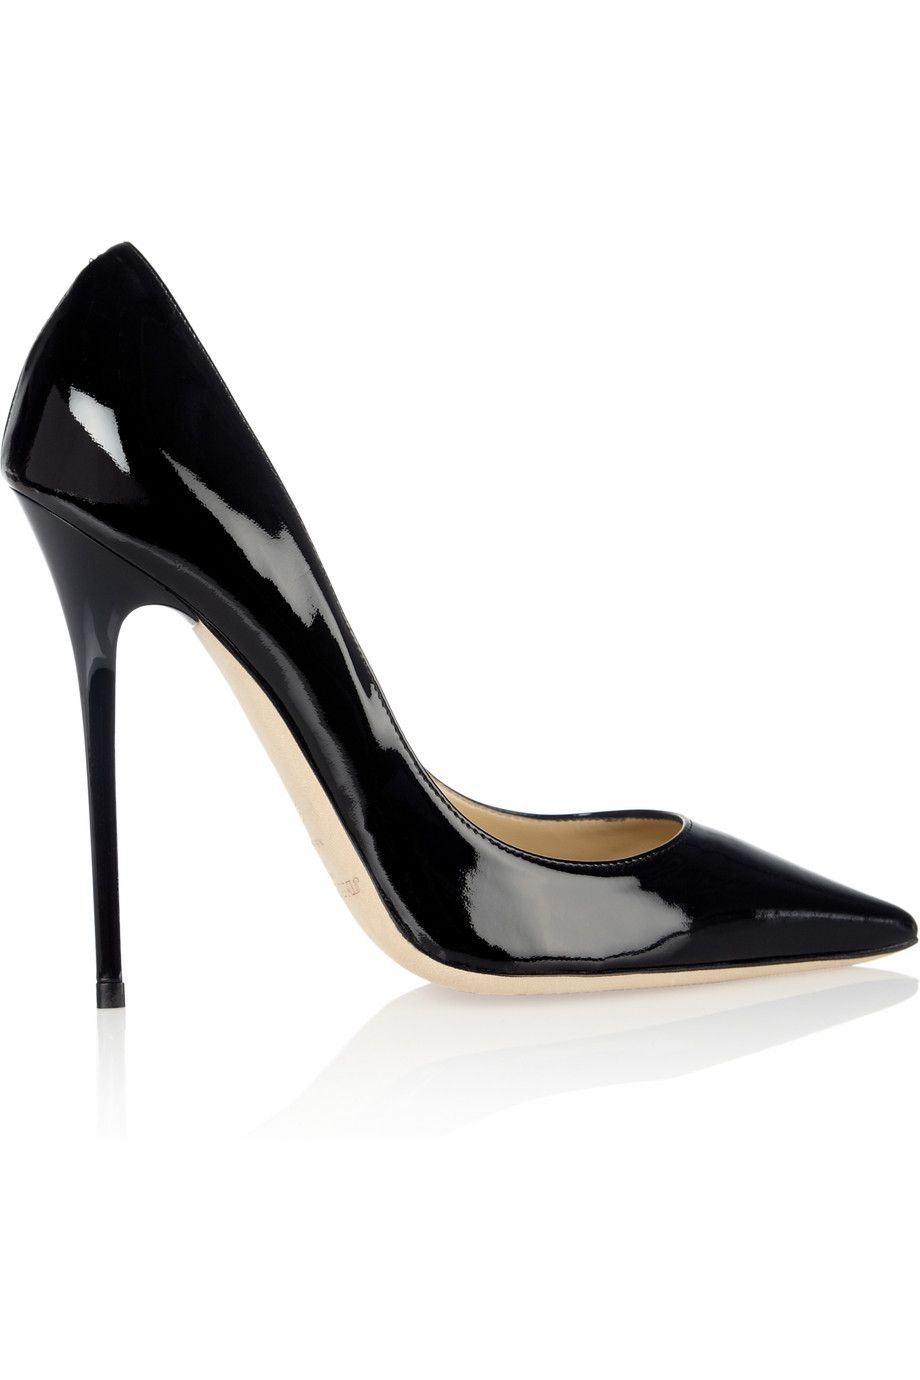 e4312ebbdc41b6 the perfect pump Jimmy Choo